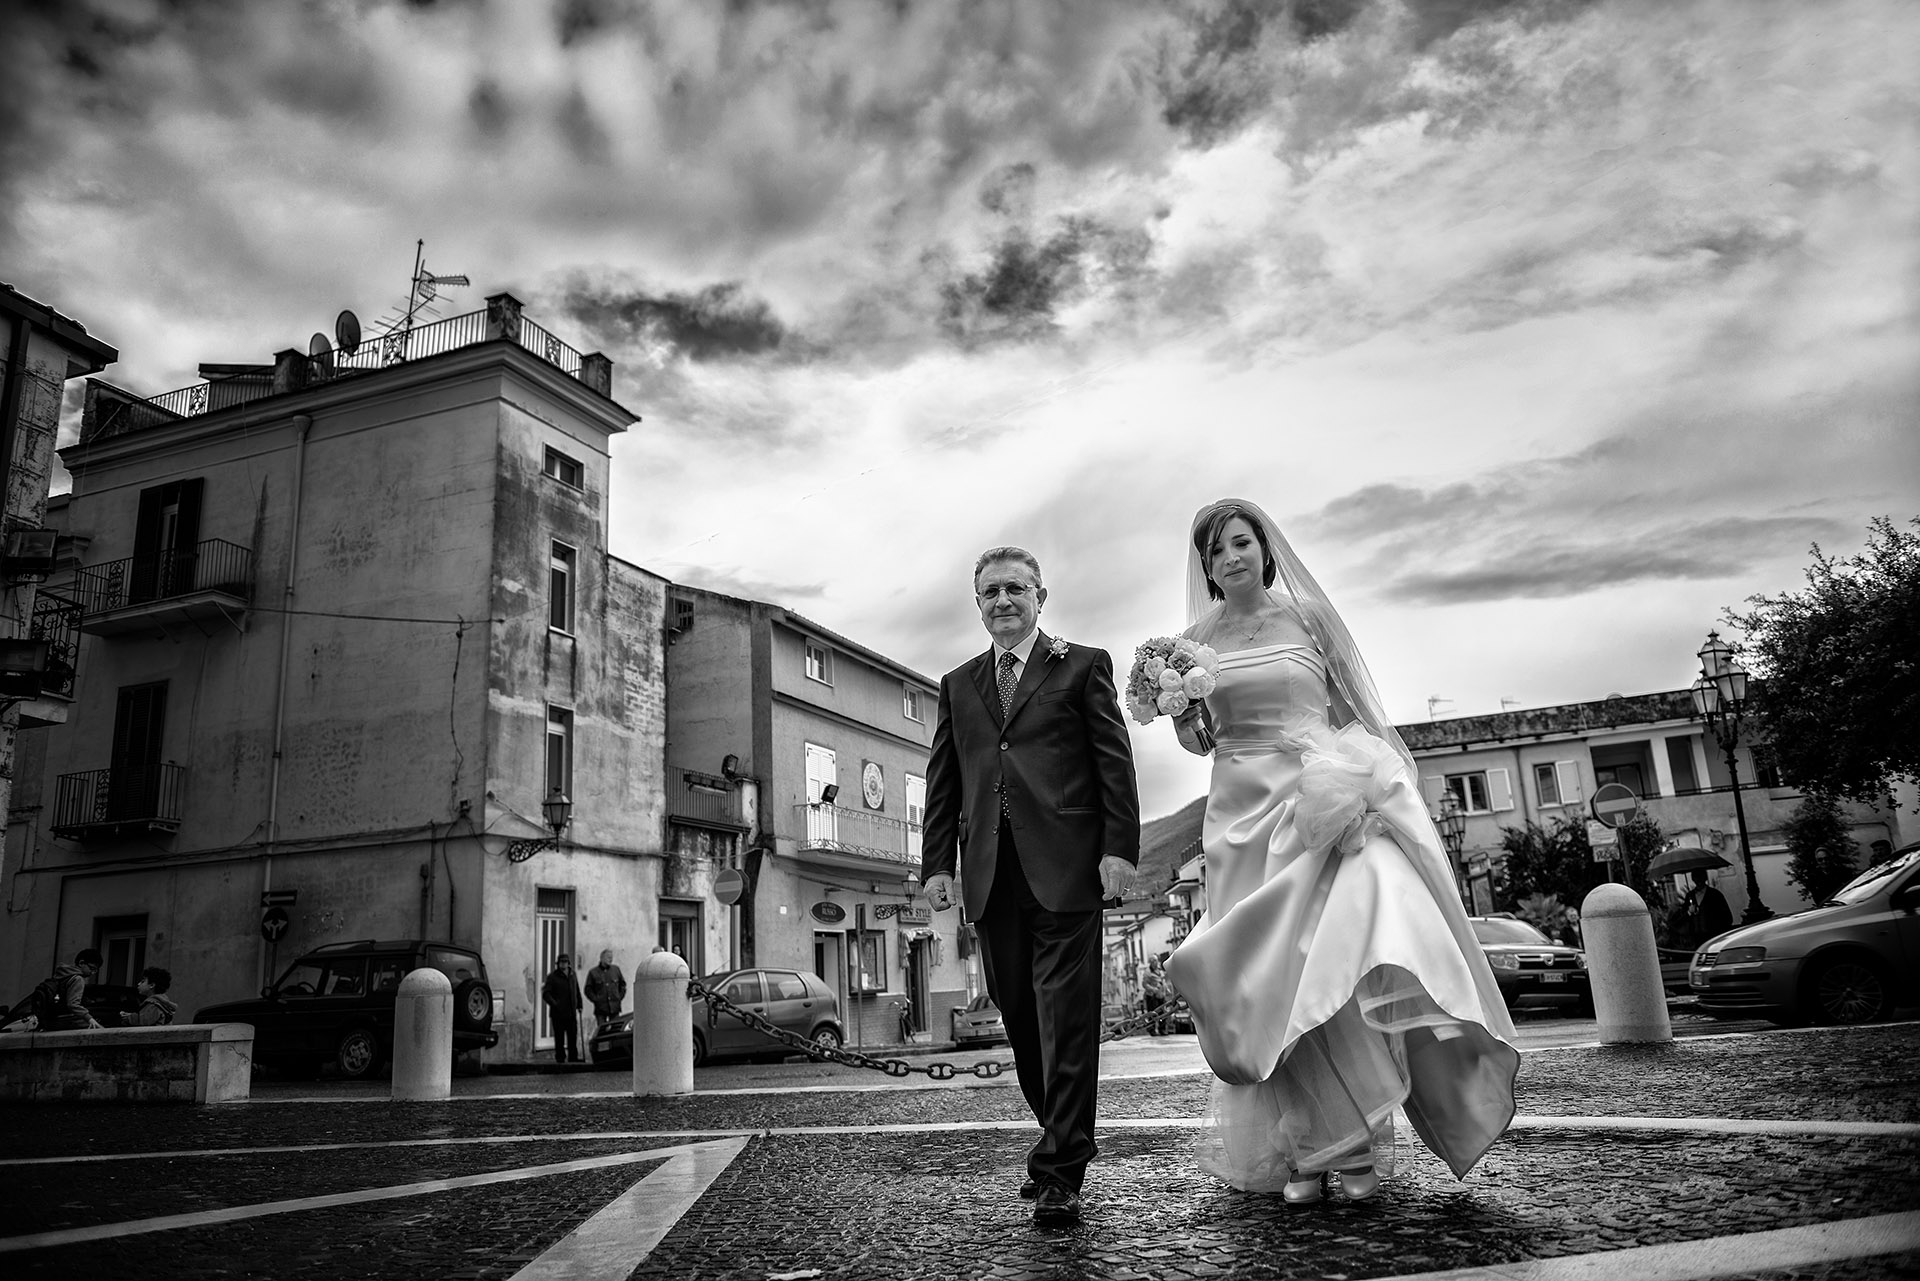 international-wedding-photographer-naples-campania-fotografi-matrimonio-caserta-aversa-salerno-roma-firenze-album-matrimonio-location-esclusiva-migliori-fotografi-matrimonio-best-selected-photographers16